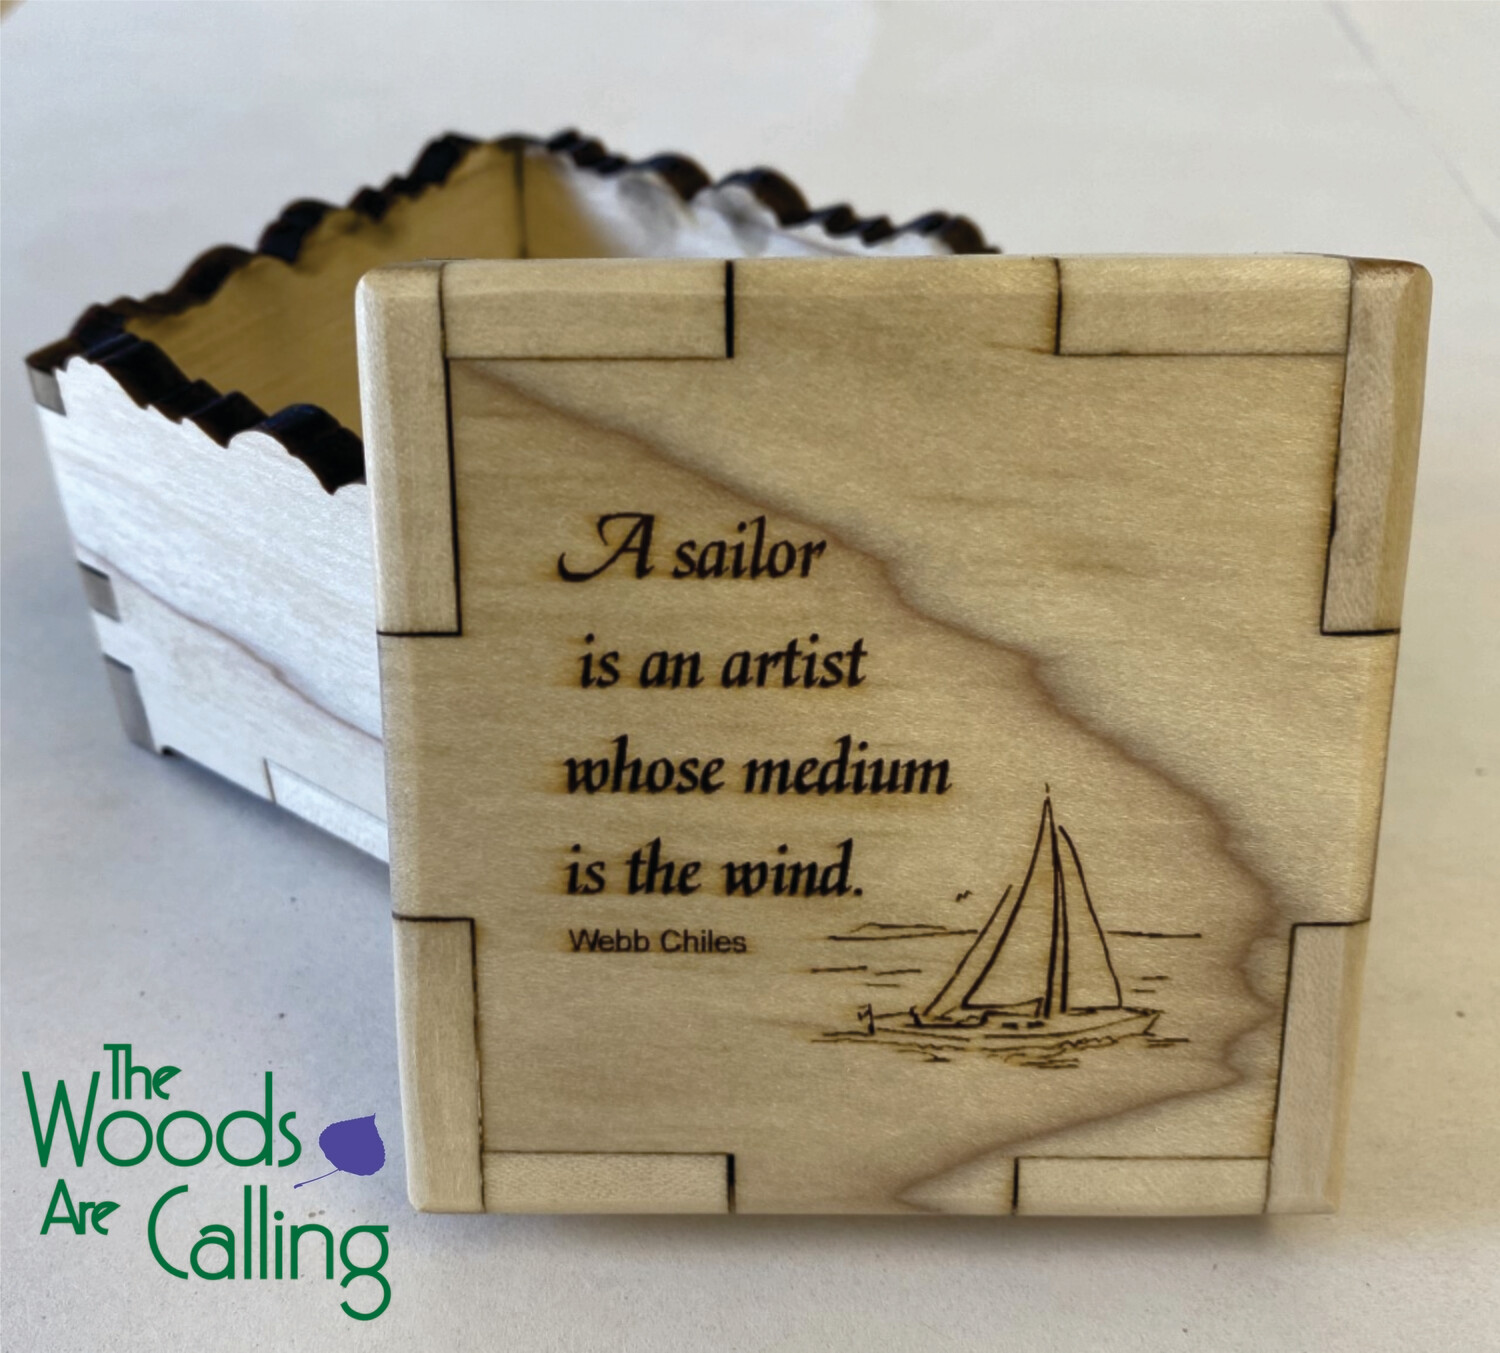 Sailors are artists Quote Box